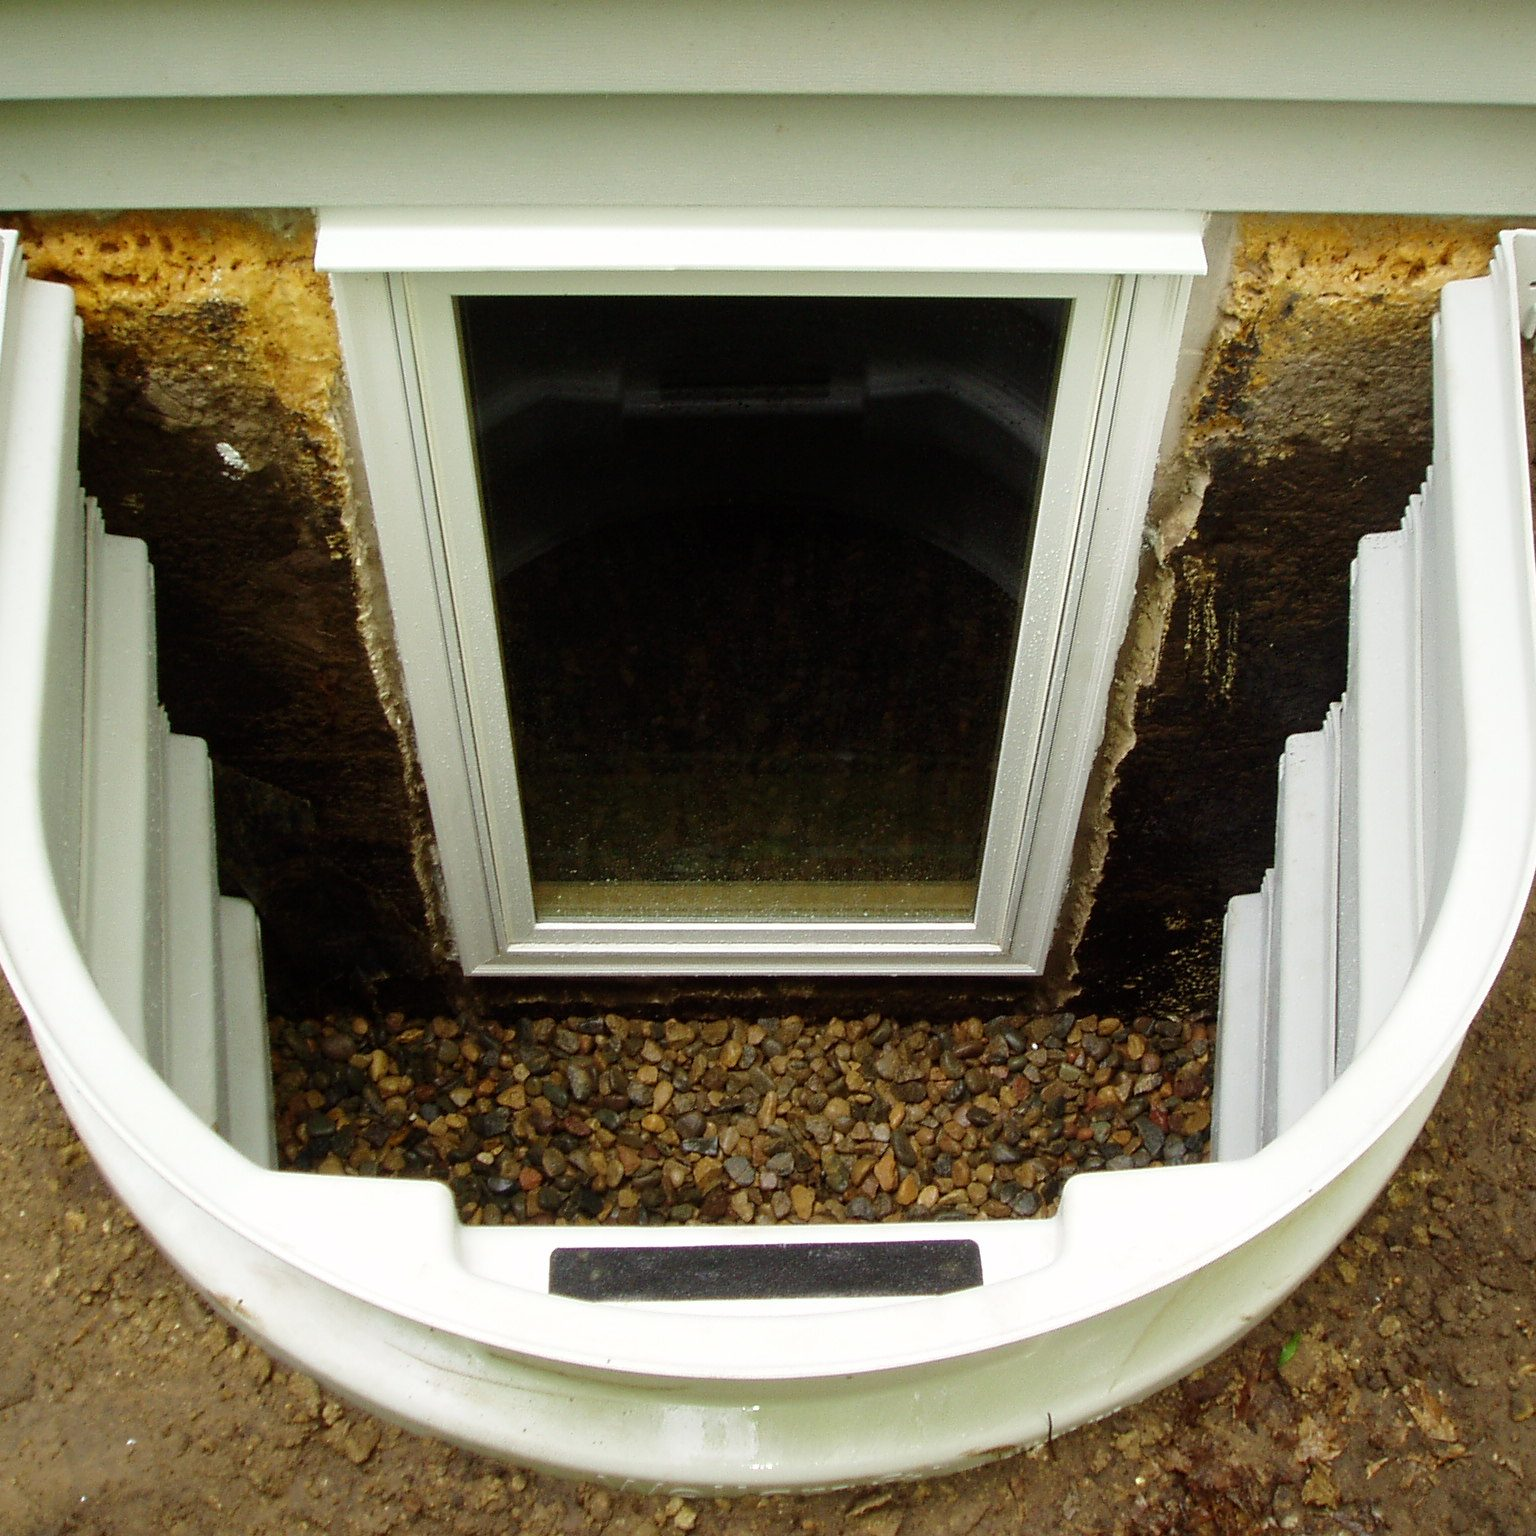 An image of an egress window